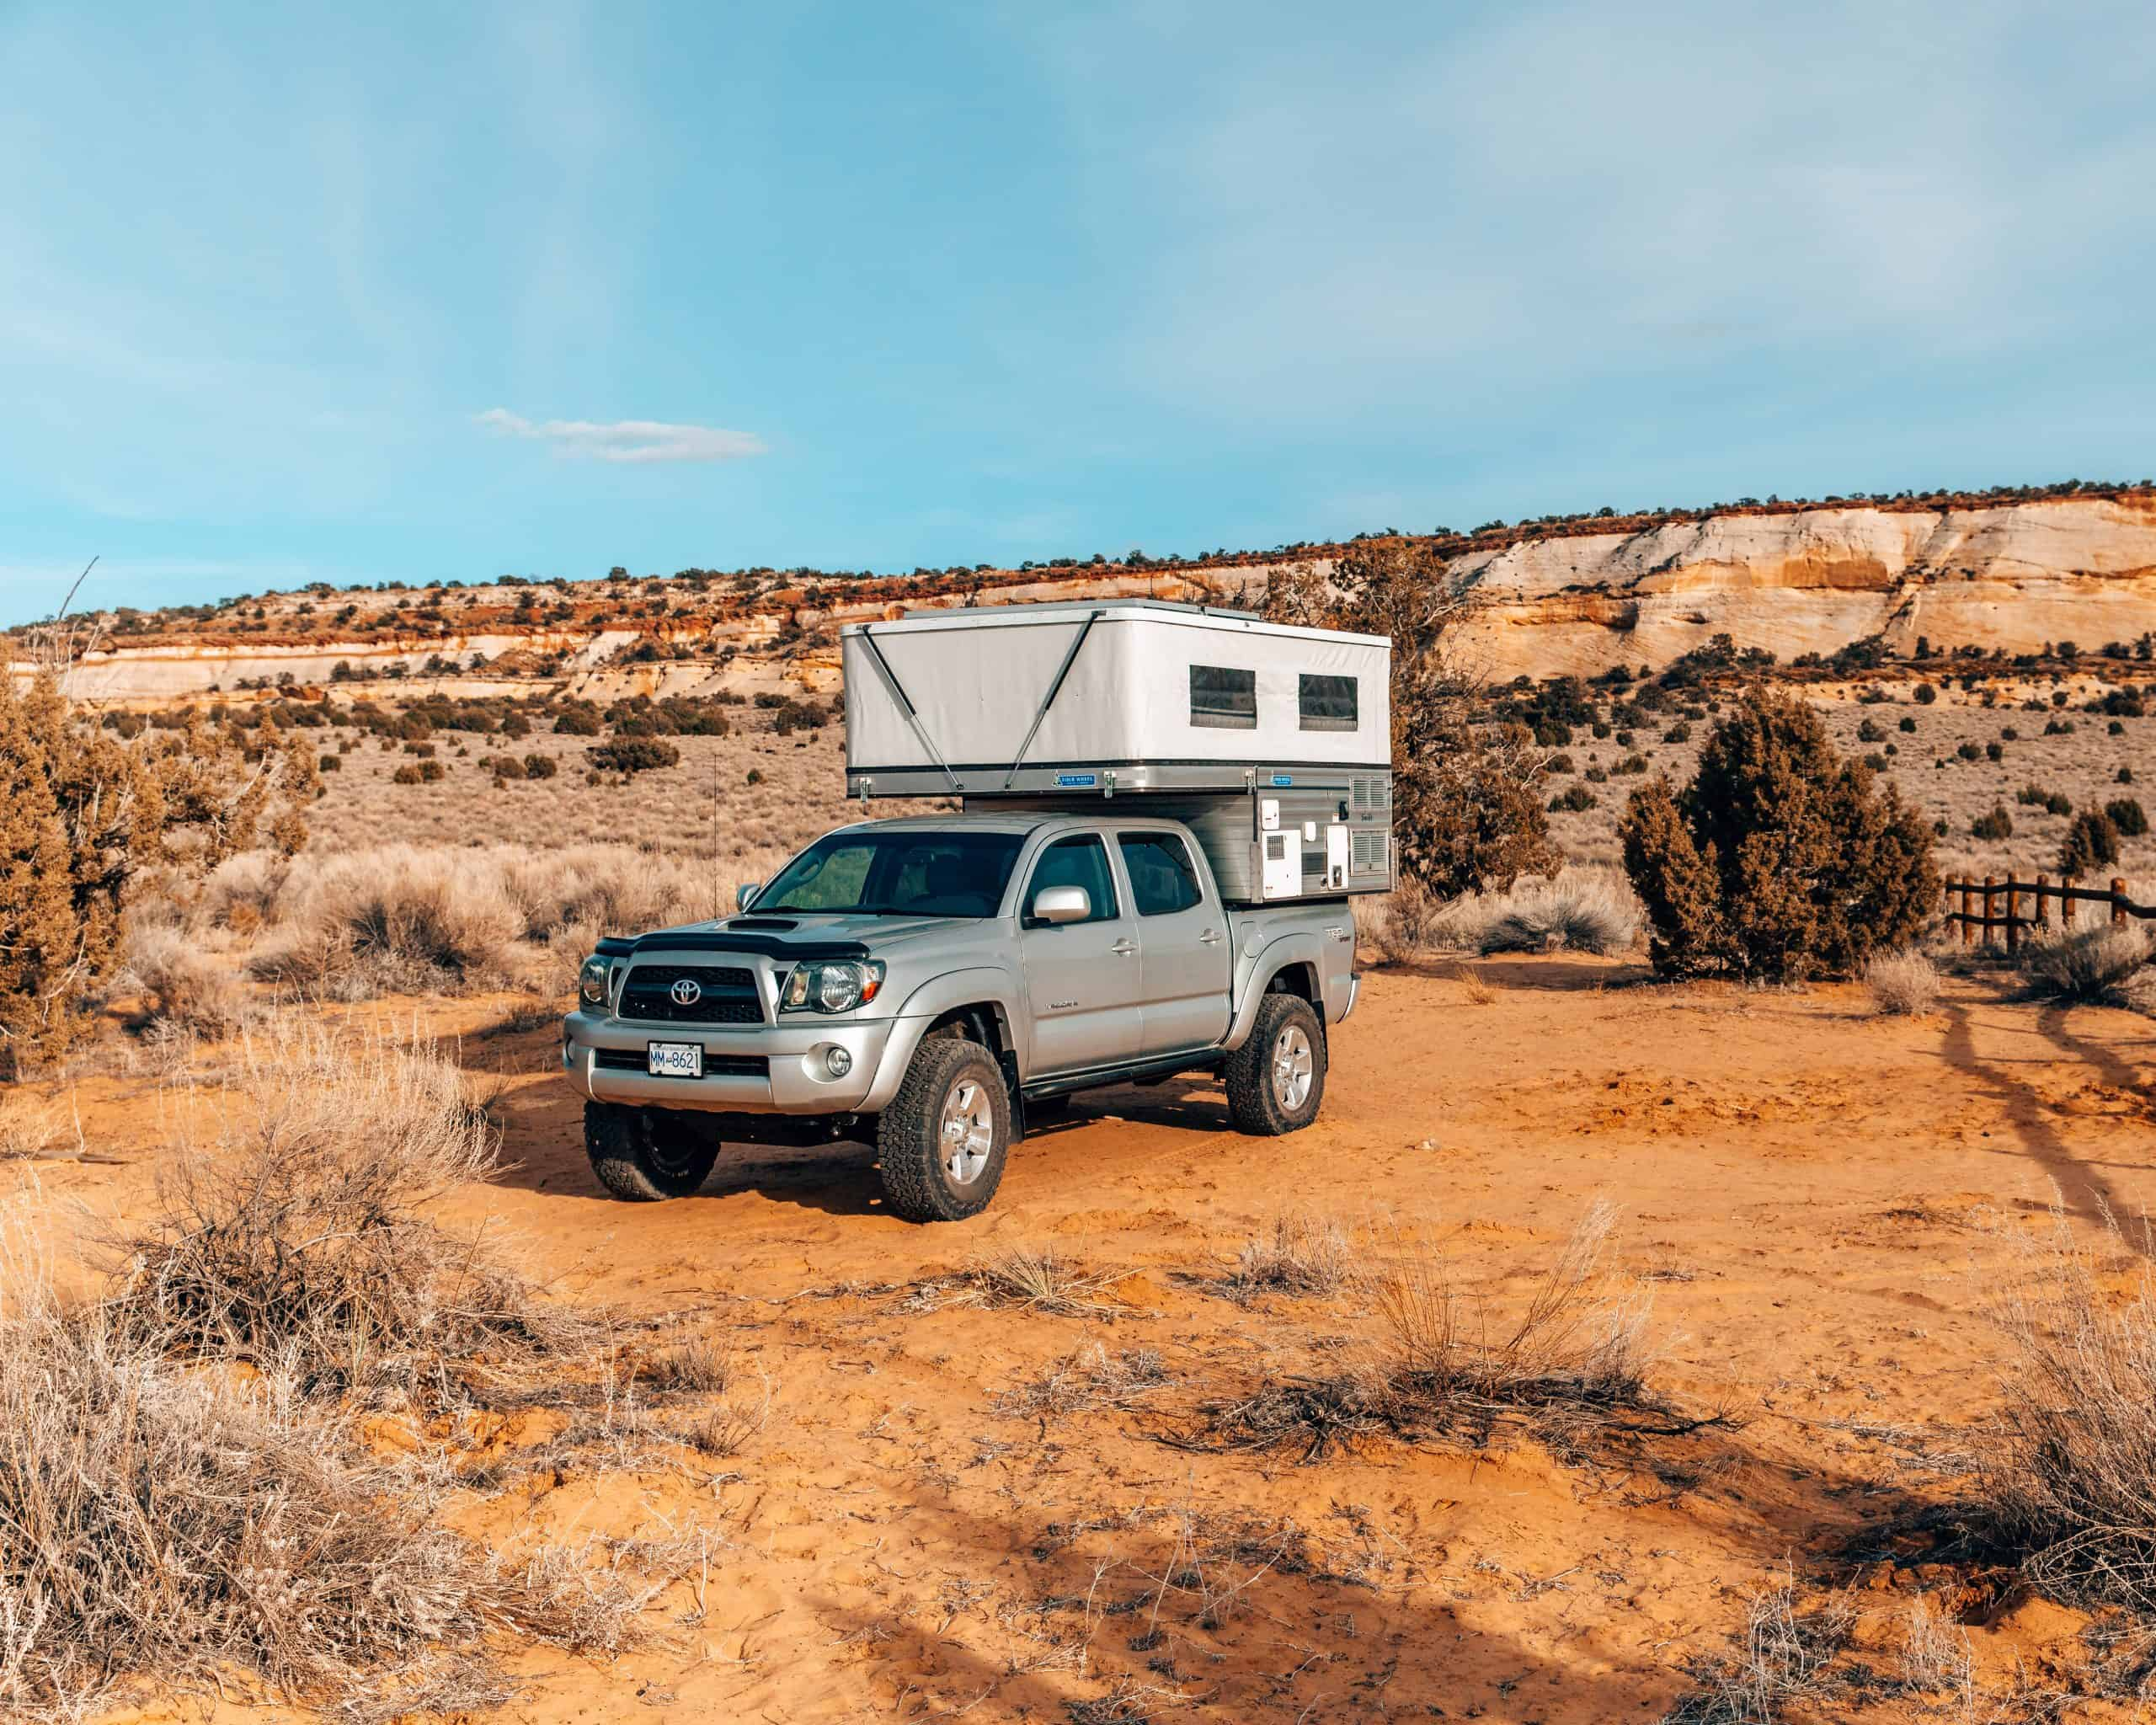 Four Wheel Camper at White Pocket, Arizona - The Next Trip